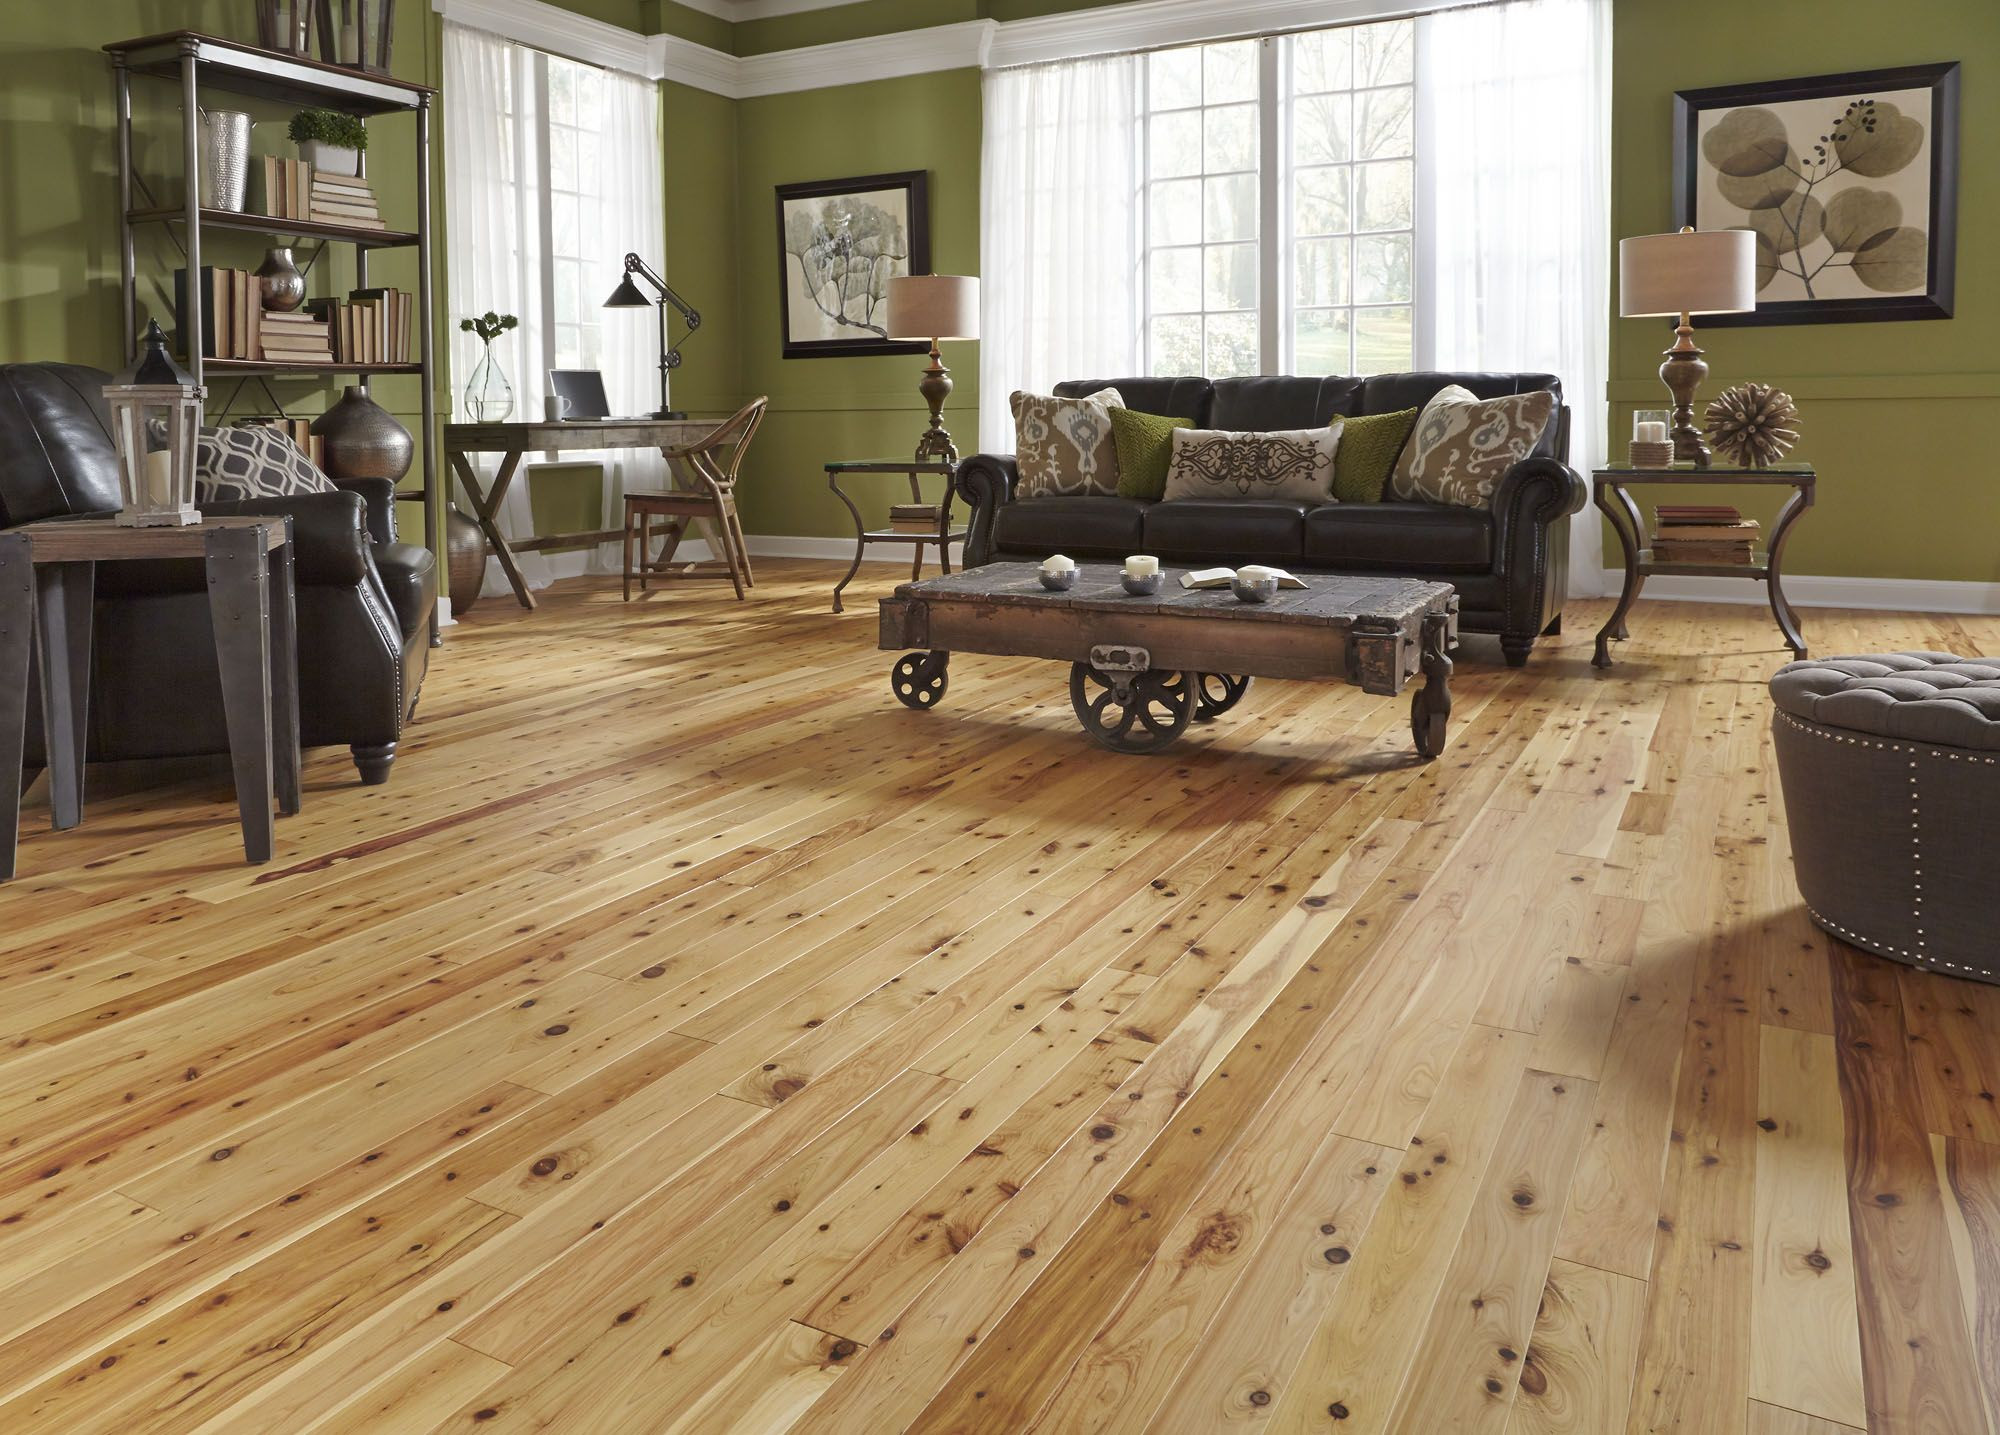 ark hardwood flooring of flooring definition 12 laminate flooring for kitchen backsplash intended for flooring definition top style is your style anything but ordinary exotic species are